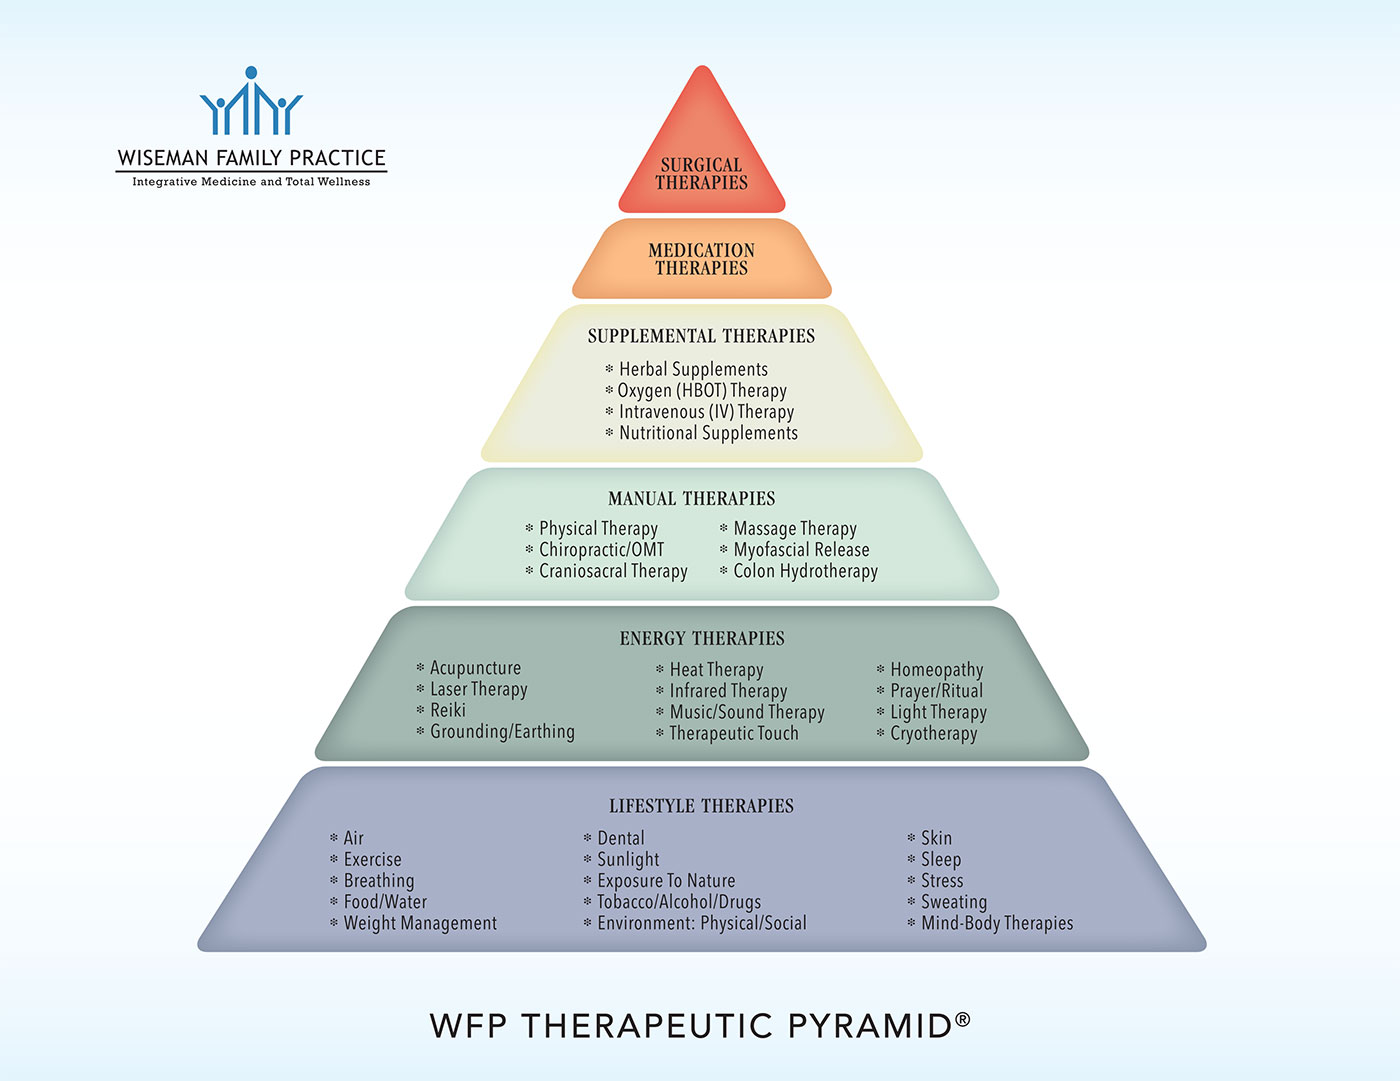 Wiseman Family Practice Therapies Pyramid Infographic